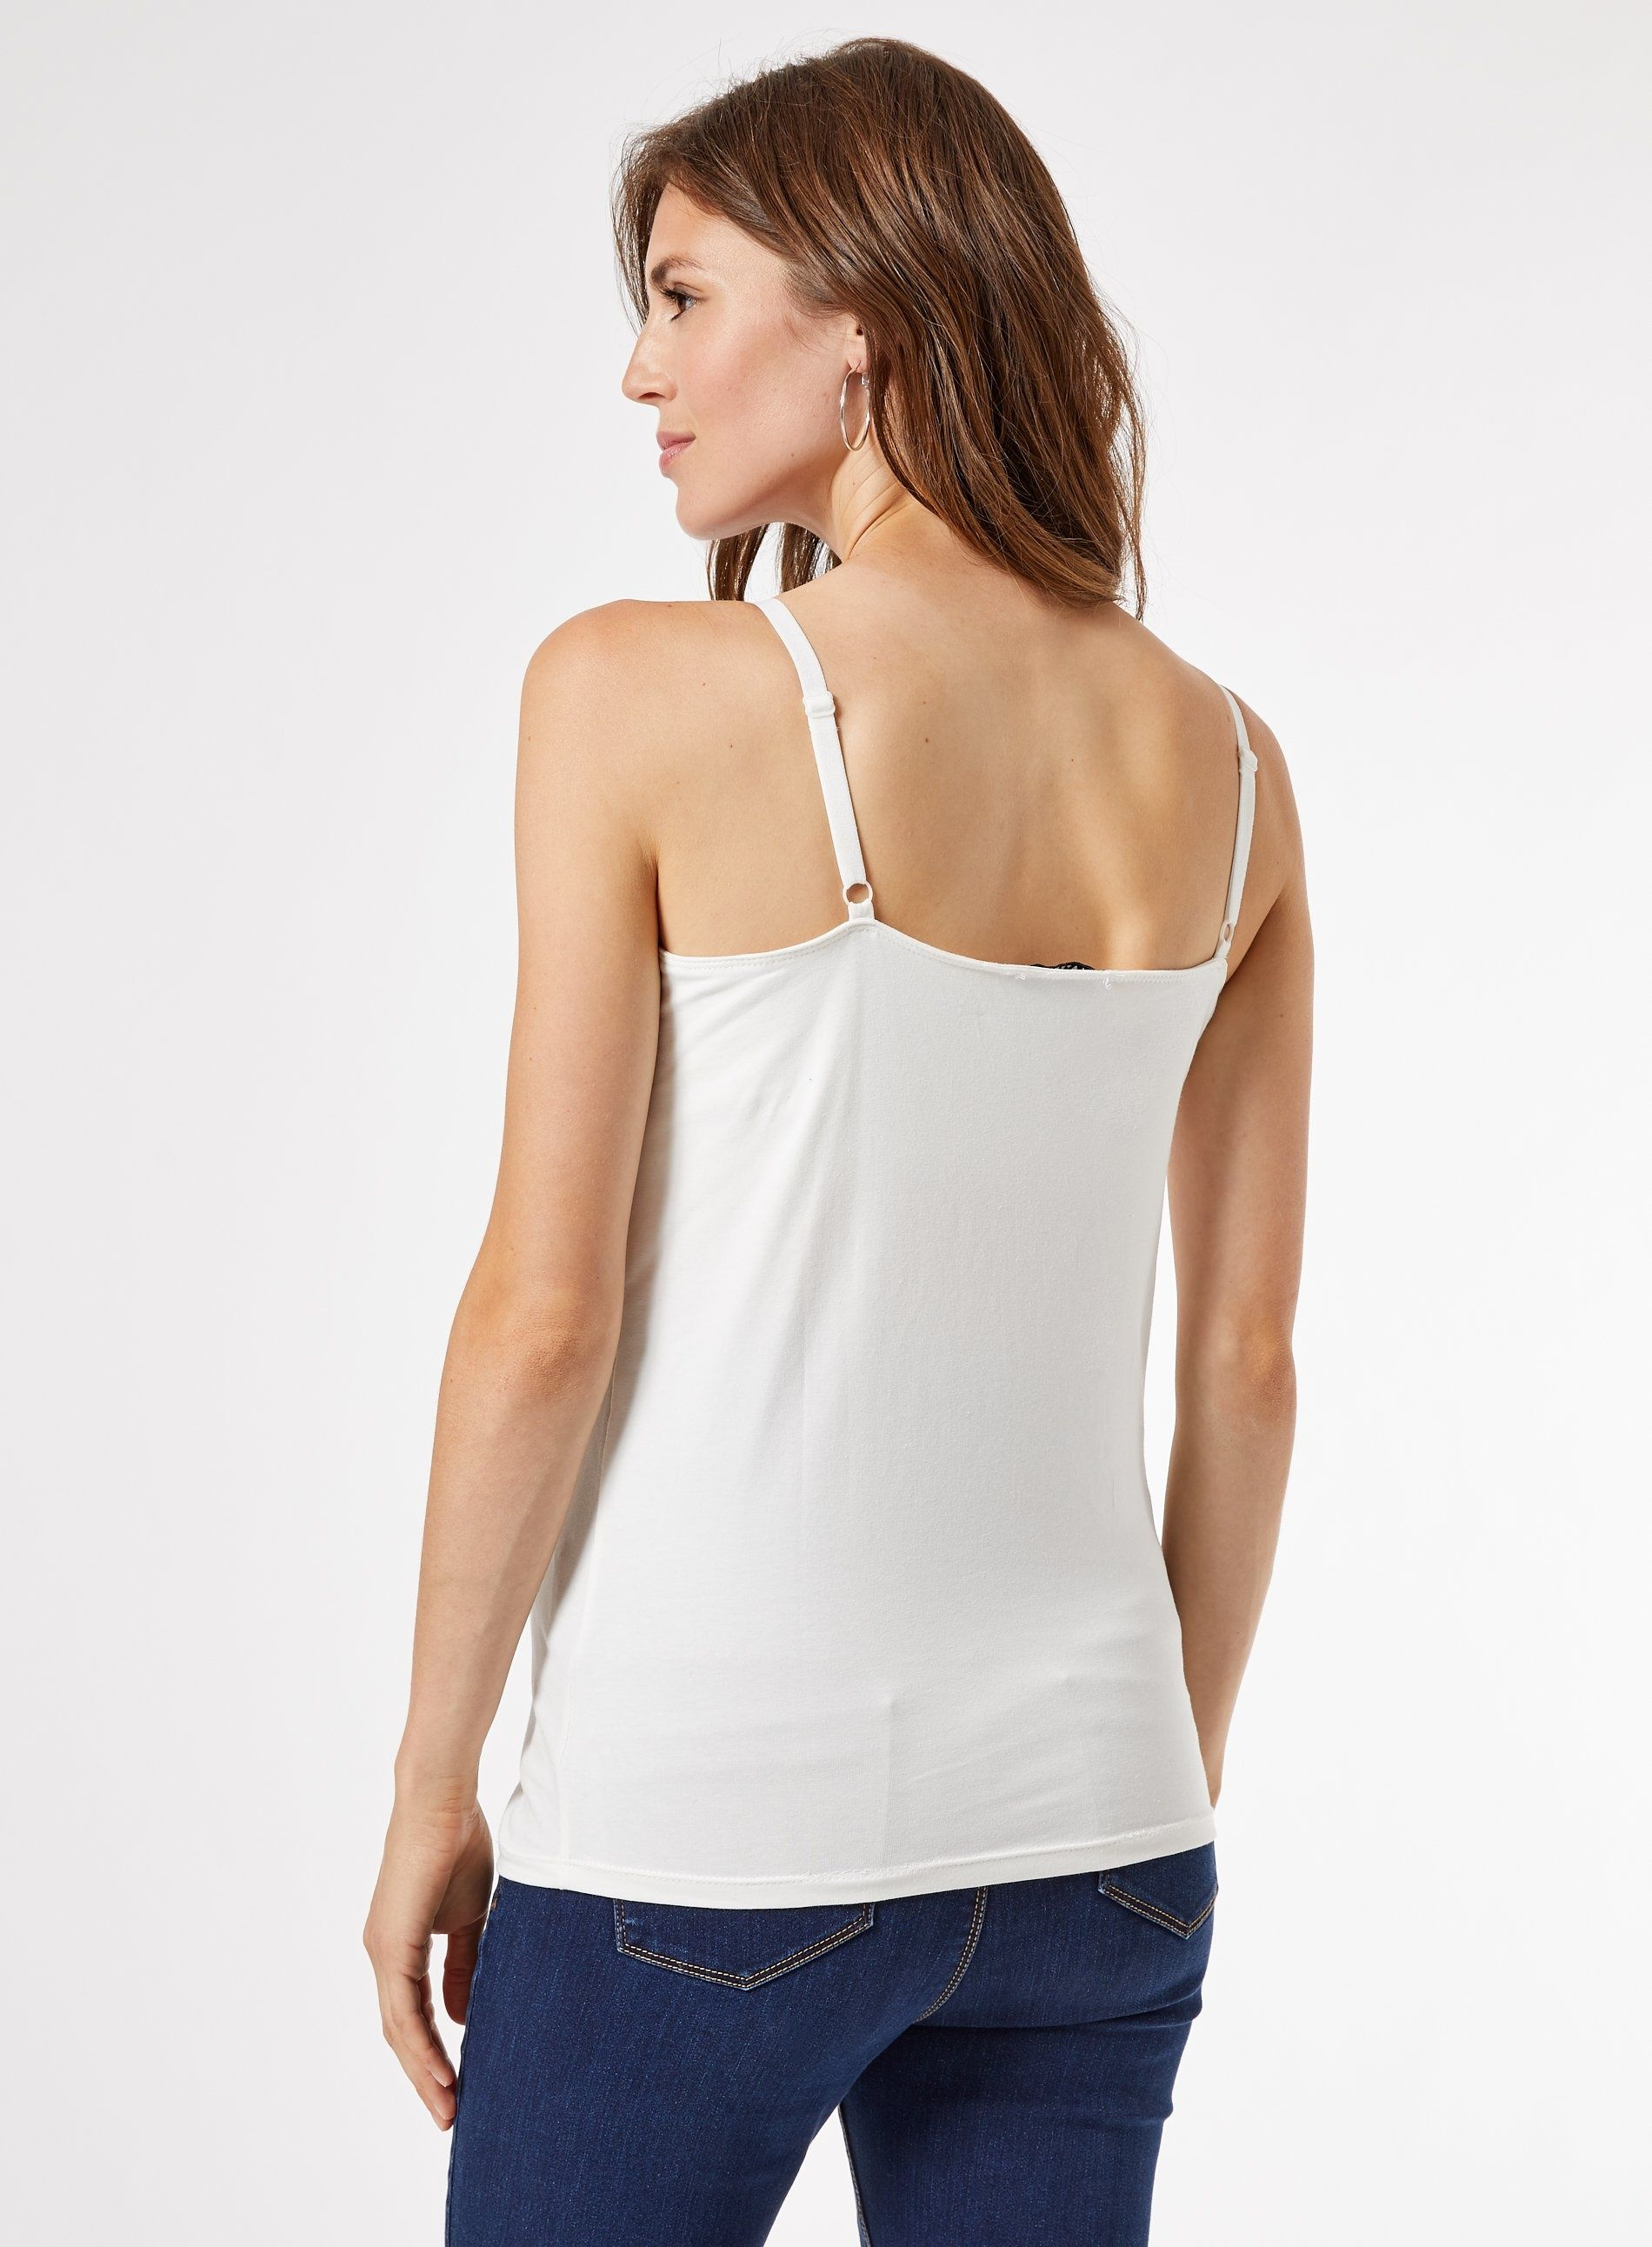 Dorothy Perkins Womens Maternity Ivory 2 Pack Basic Plain Everyday Camisole Top